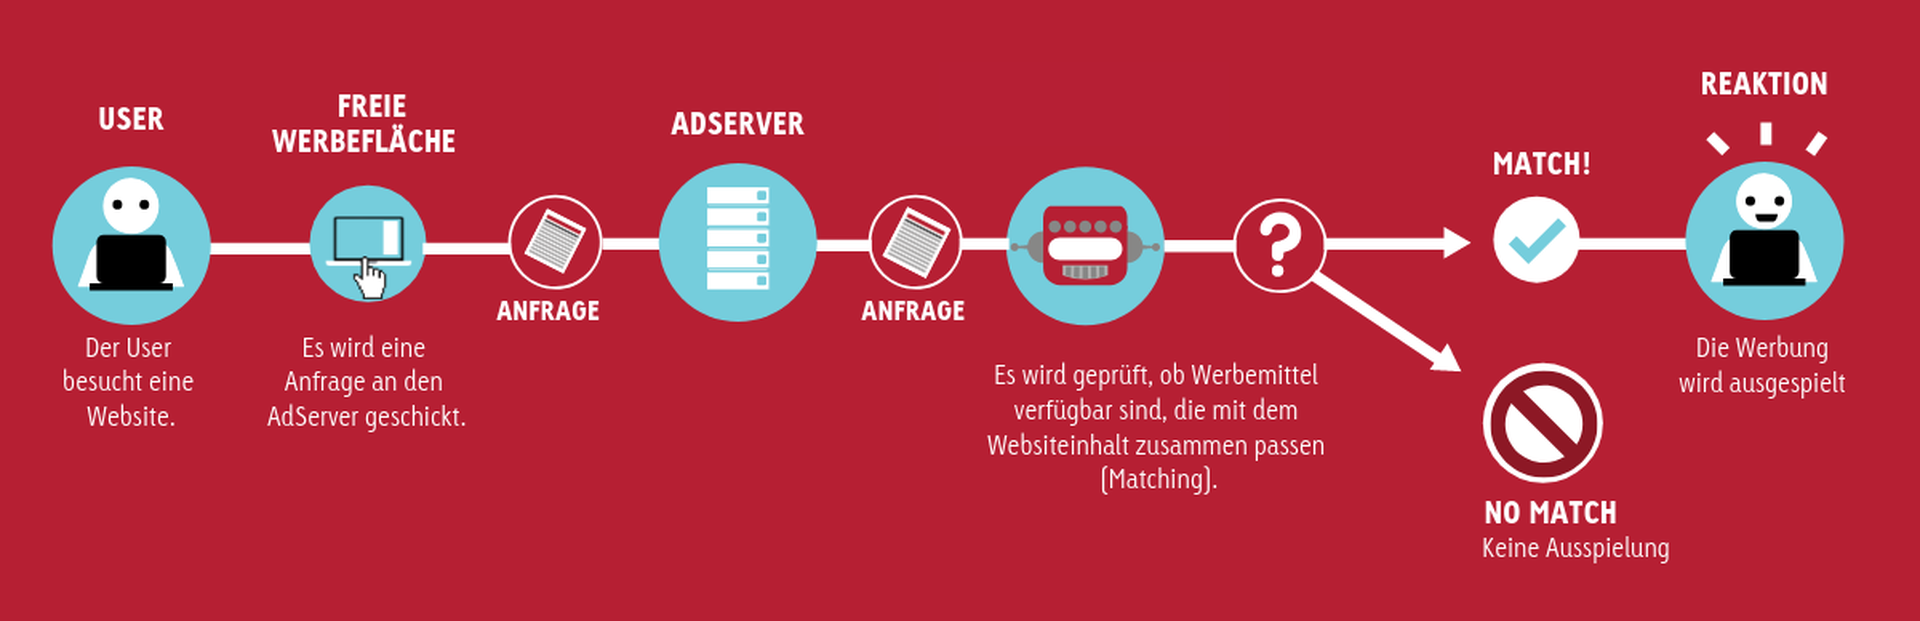 goldbach-at-infografik-kontextuelles-targeting.png